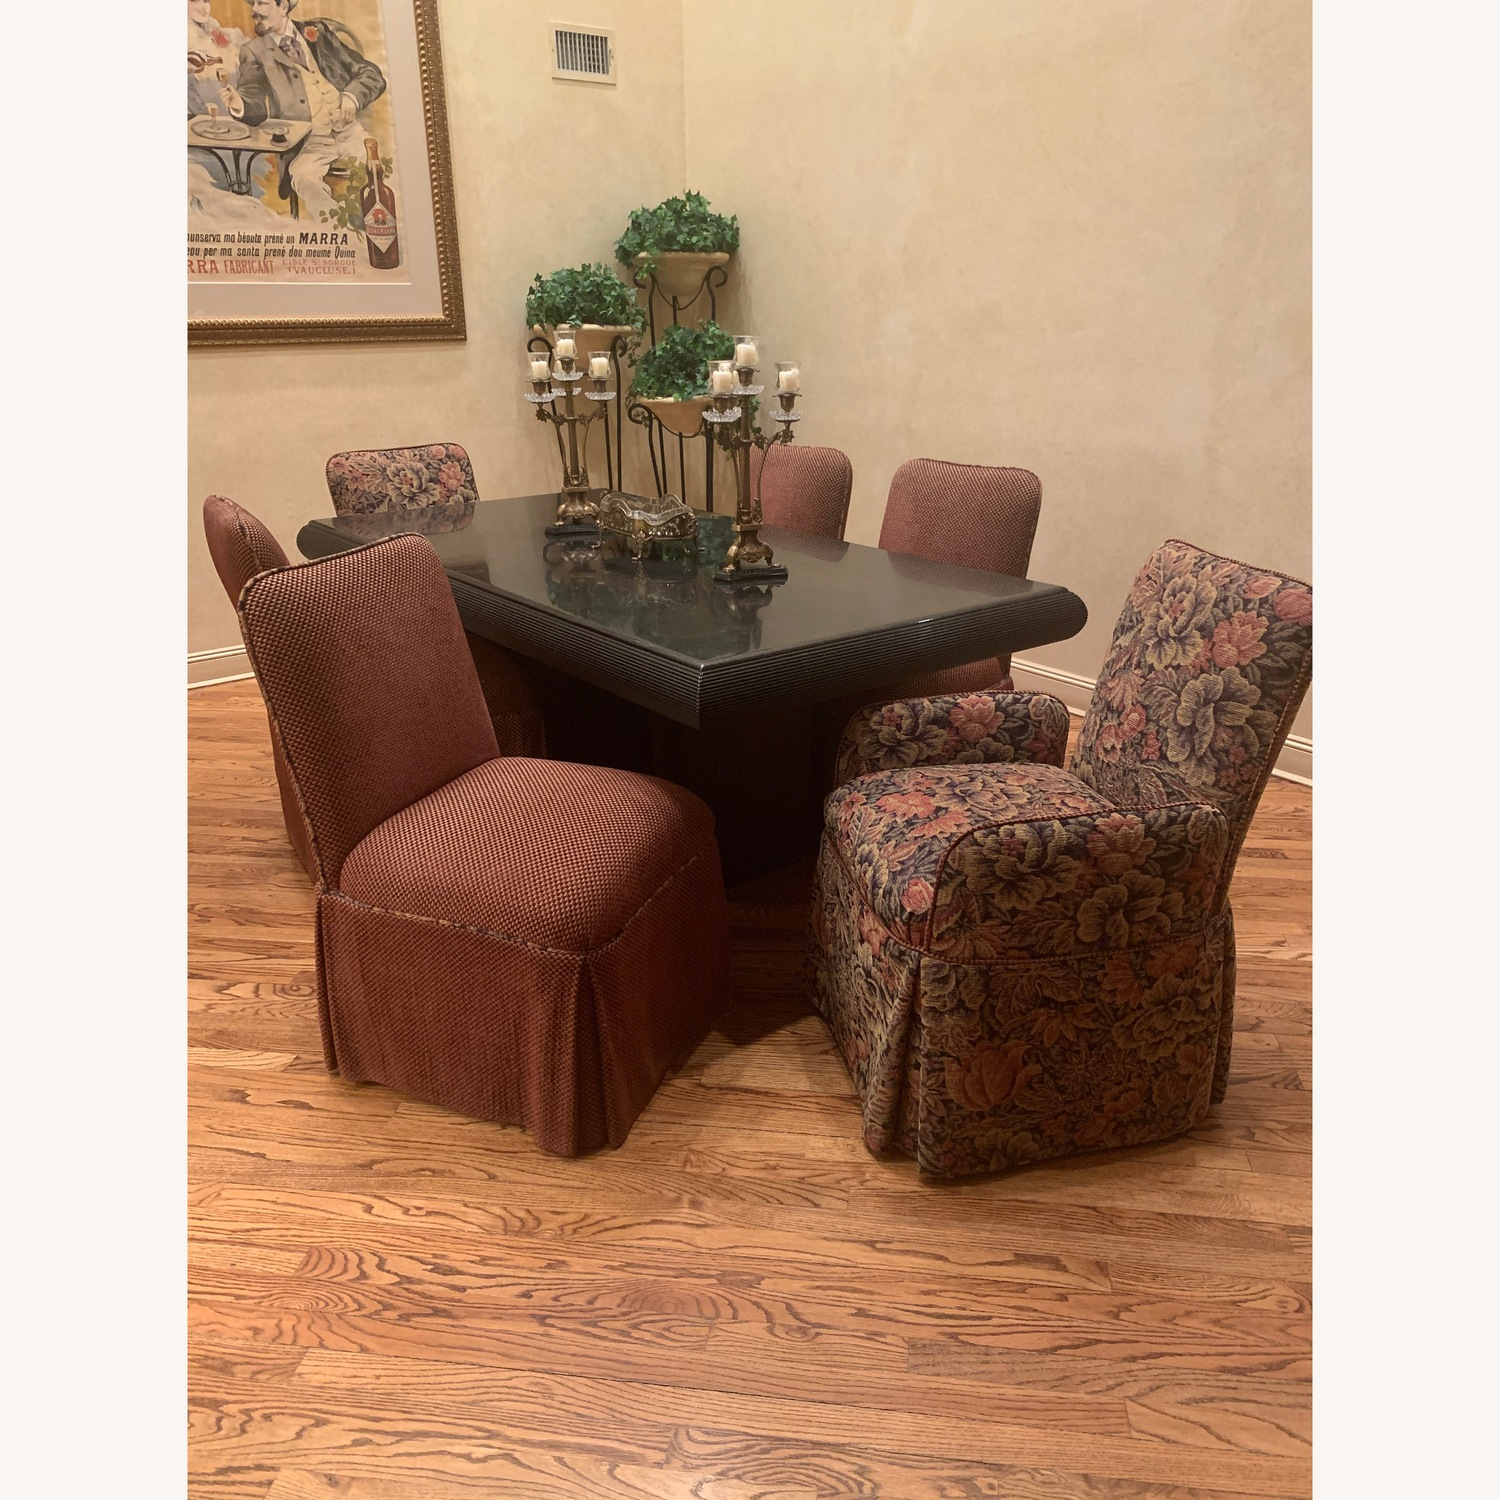 6 upholstered dining chairs - image-0